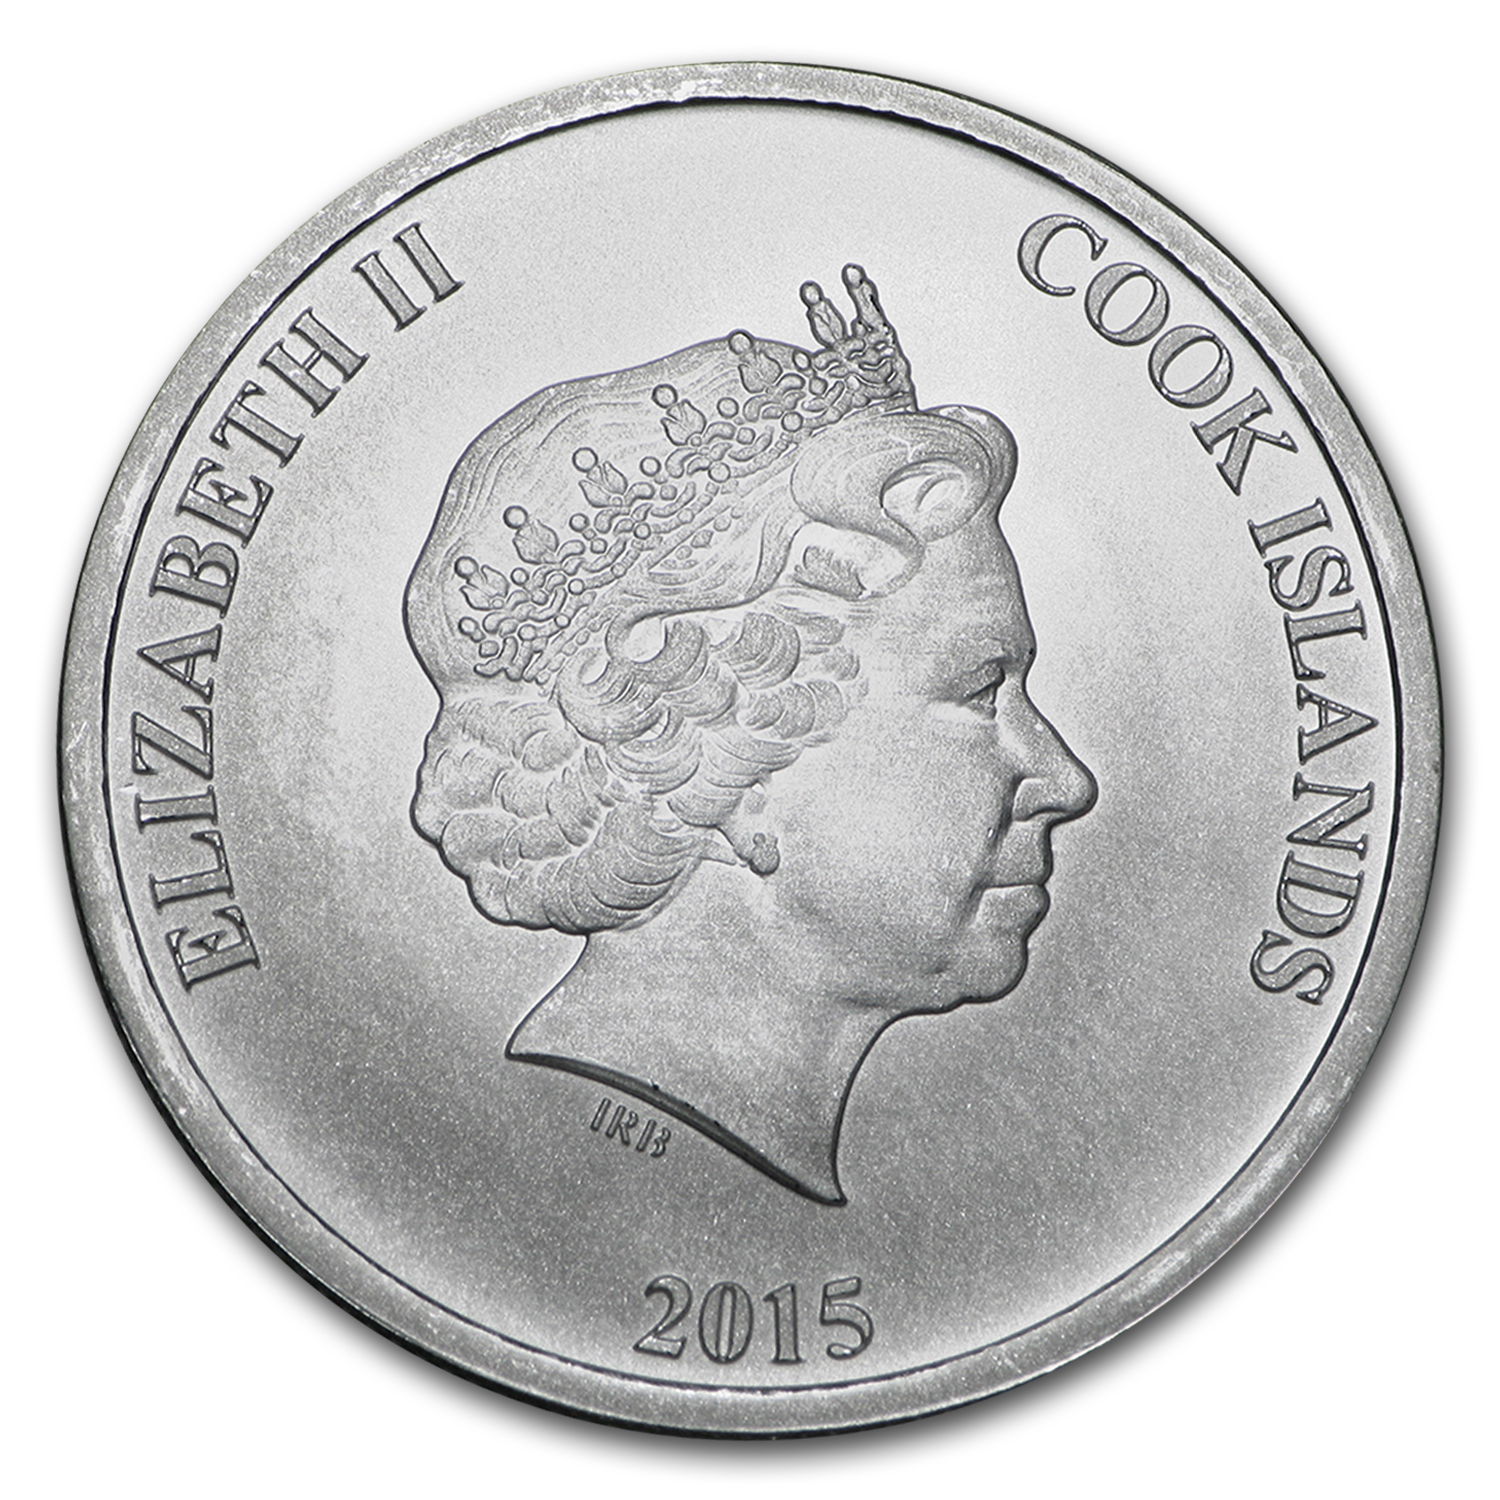 2015 Cook Islands 1/4 oz Silver Bounty Coin